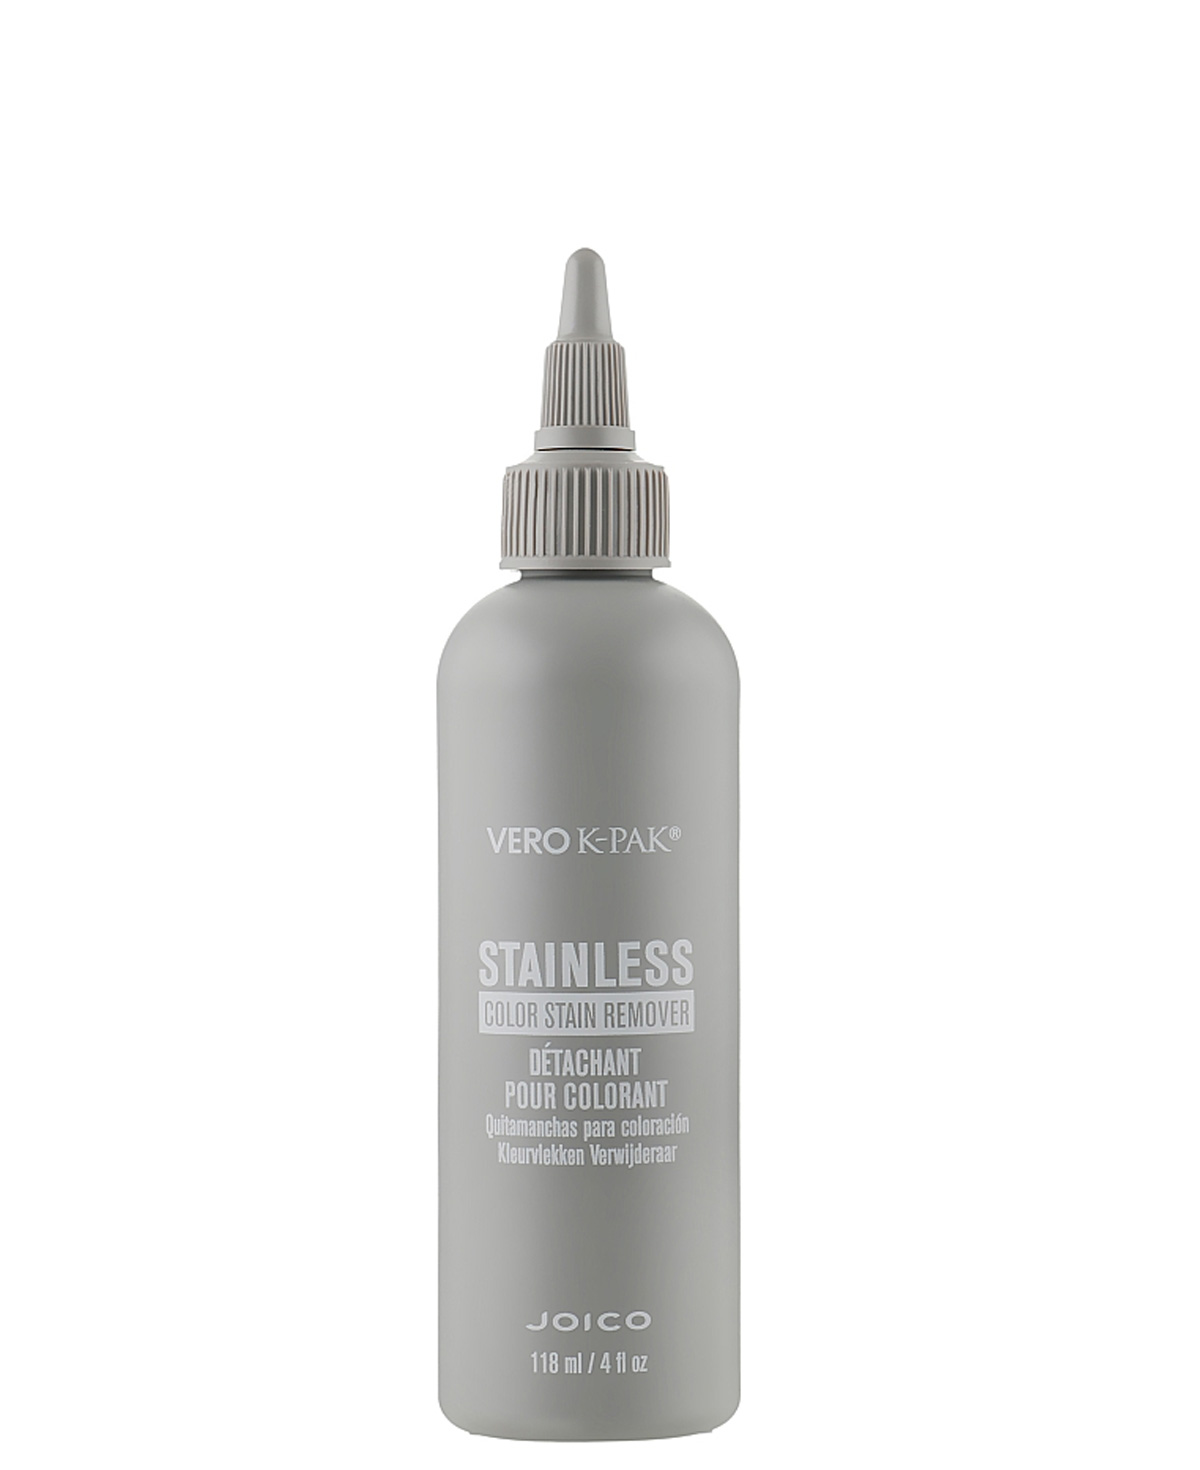 Joico Vero Stainless Color Stain Remover 118ml